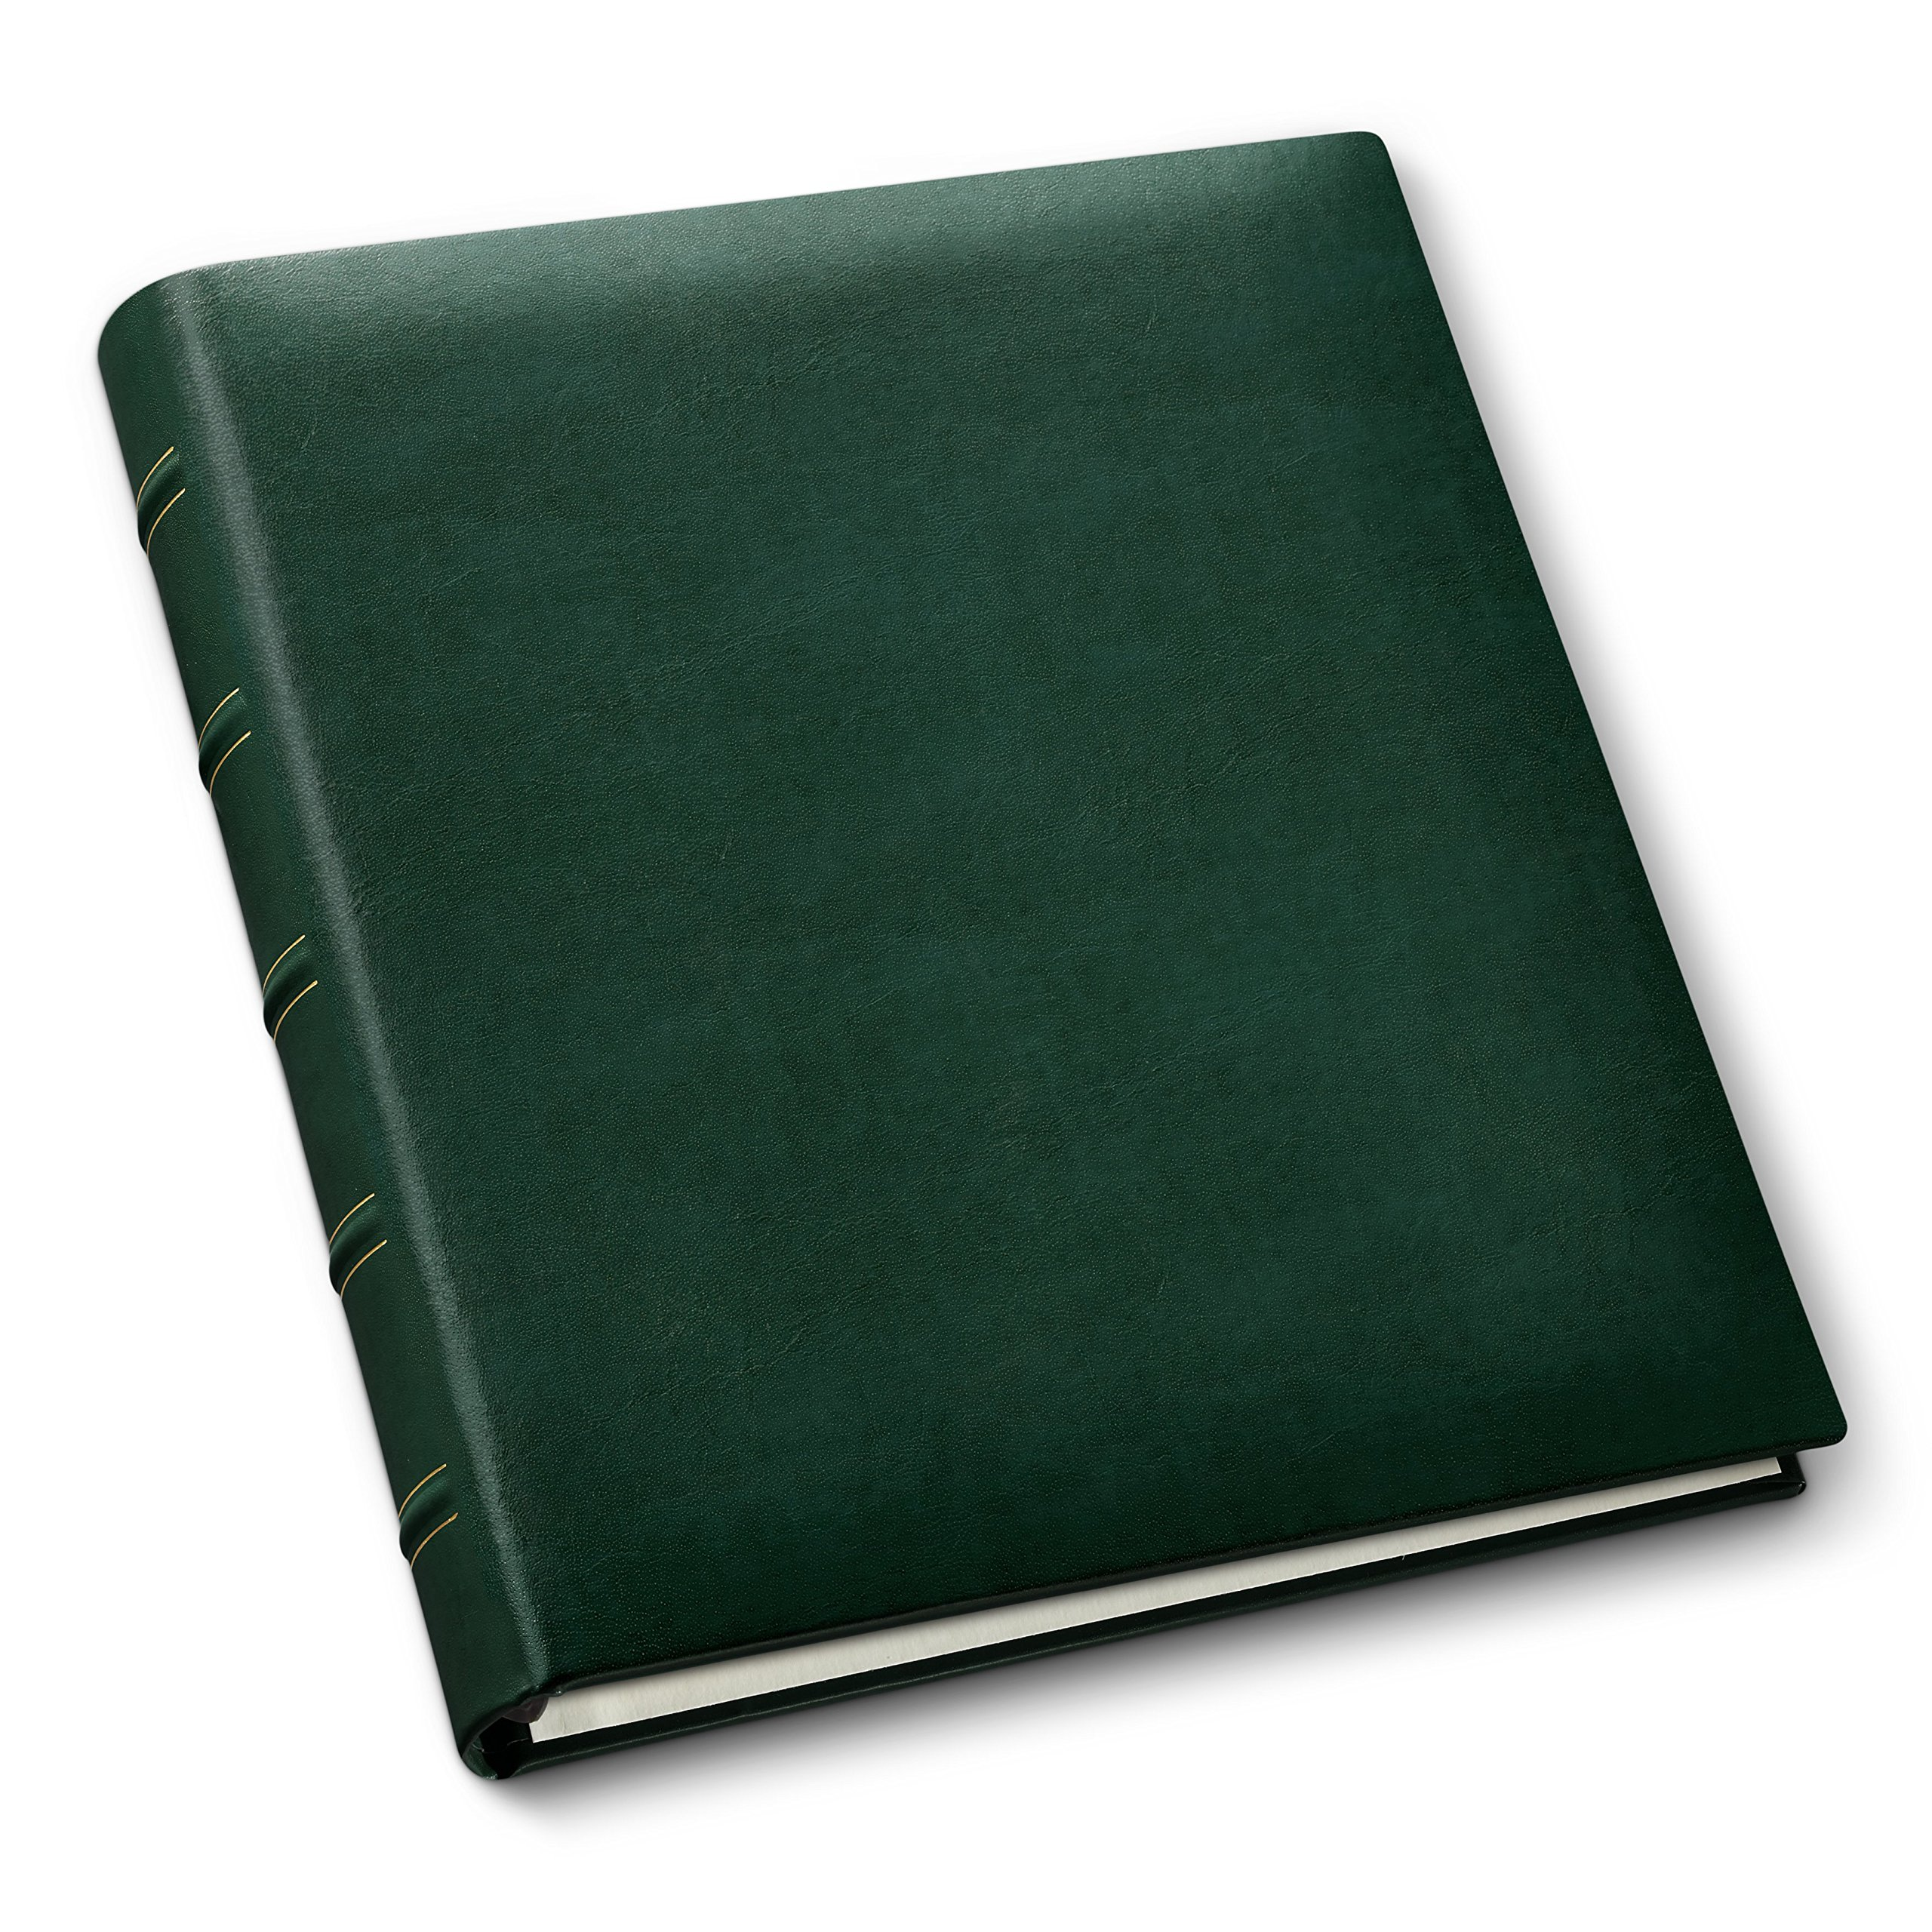 Gallery Leather Gallery Photo Album Acadia Green by Gallery Leather